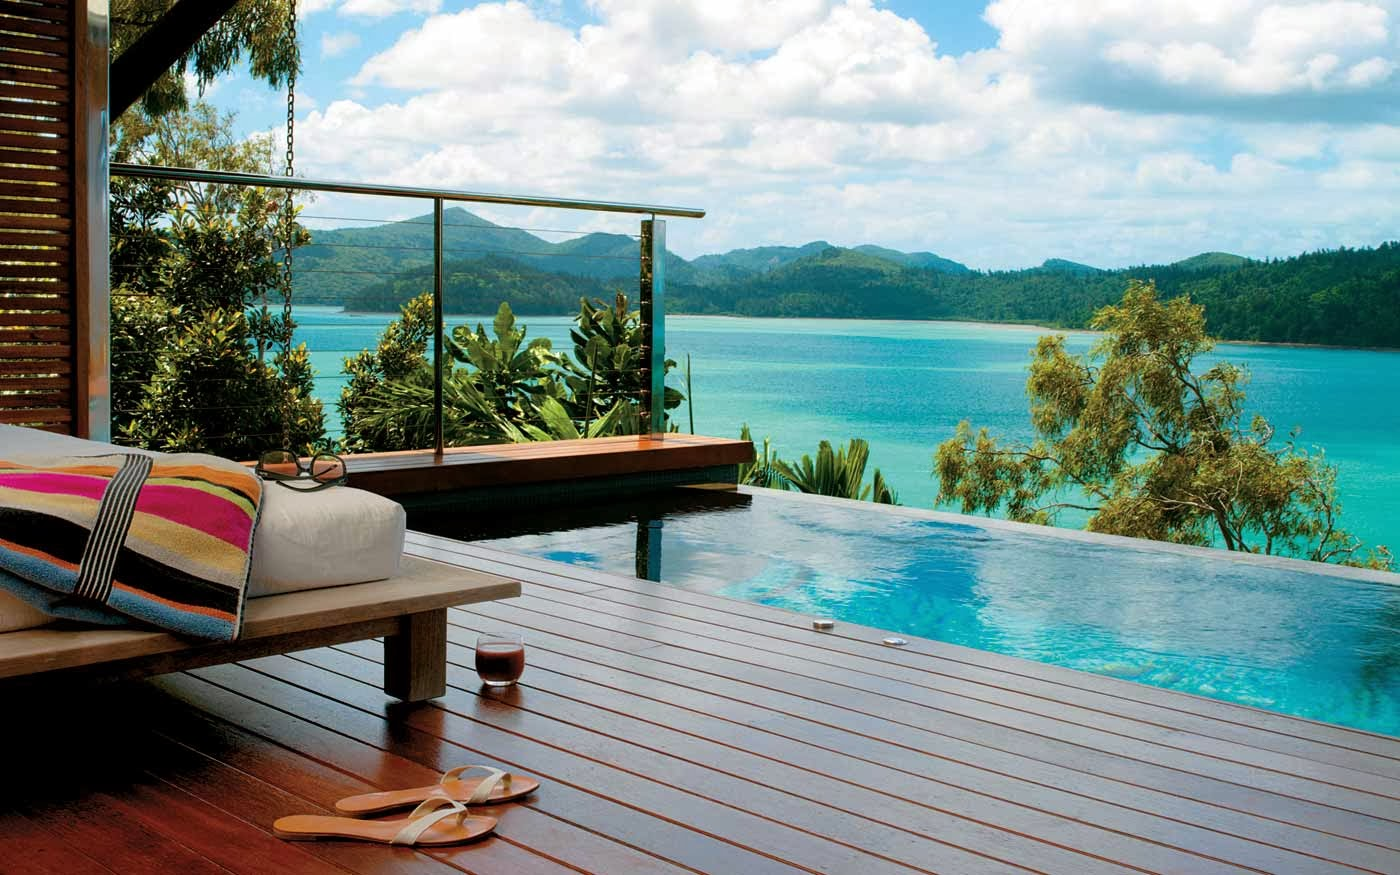 Hotel Rooms With Private Pools Australia